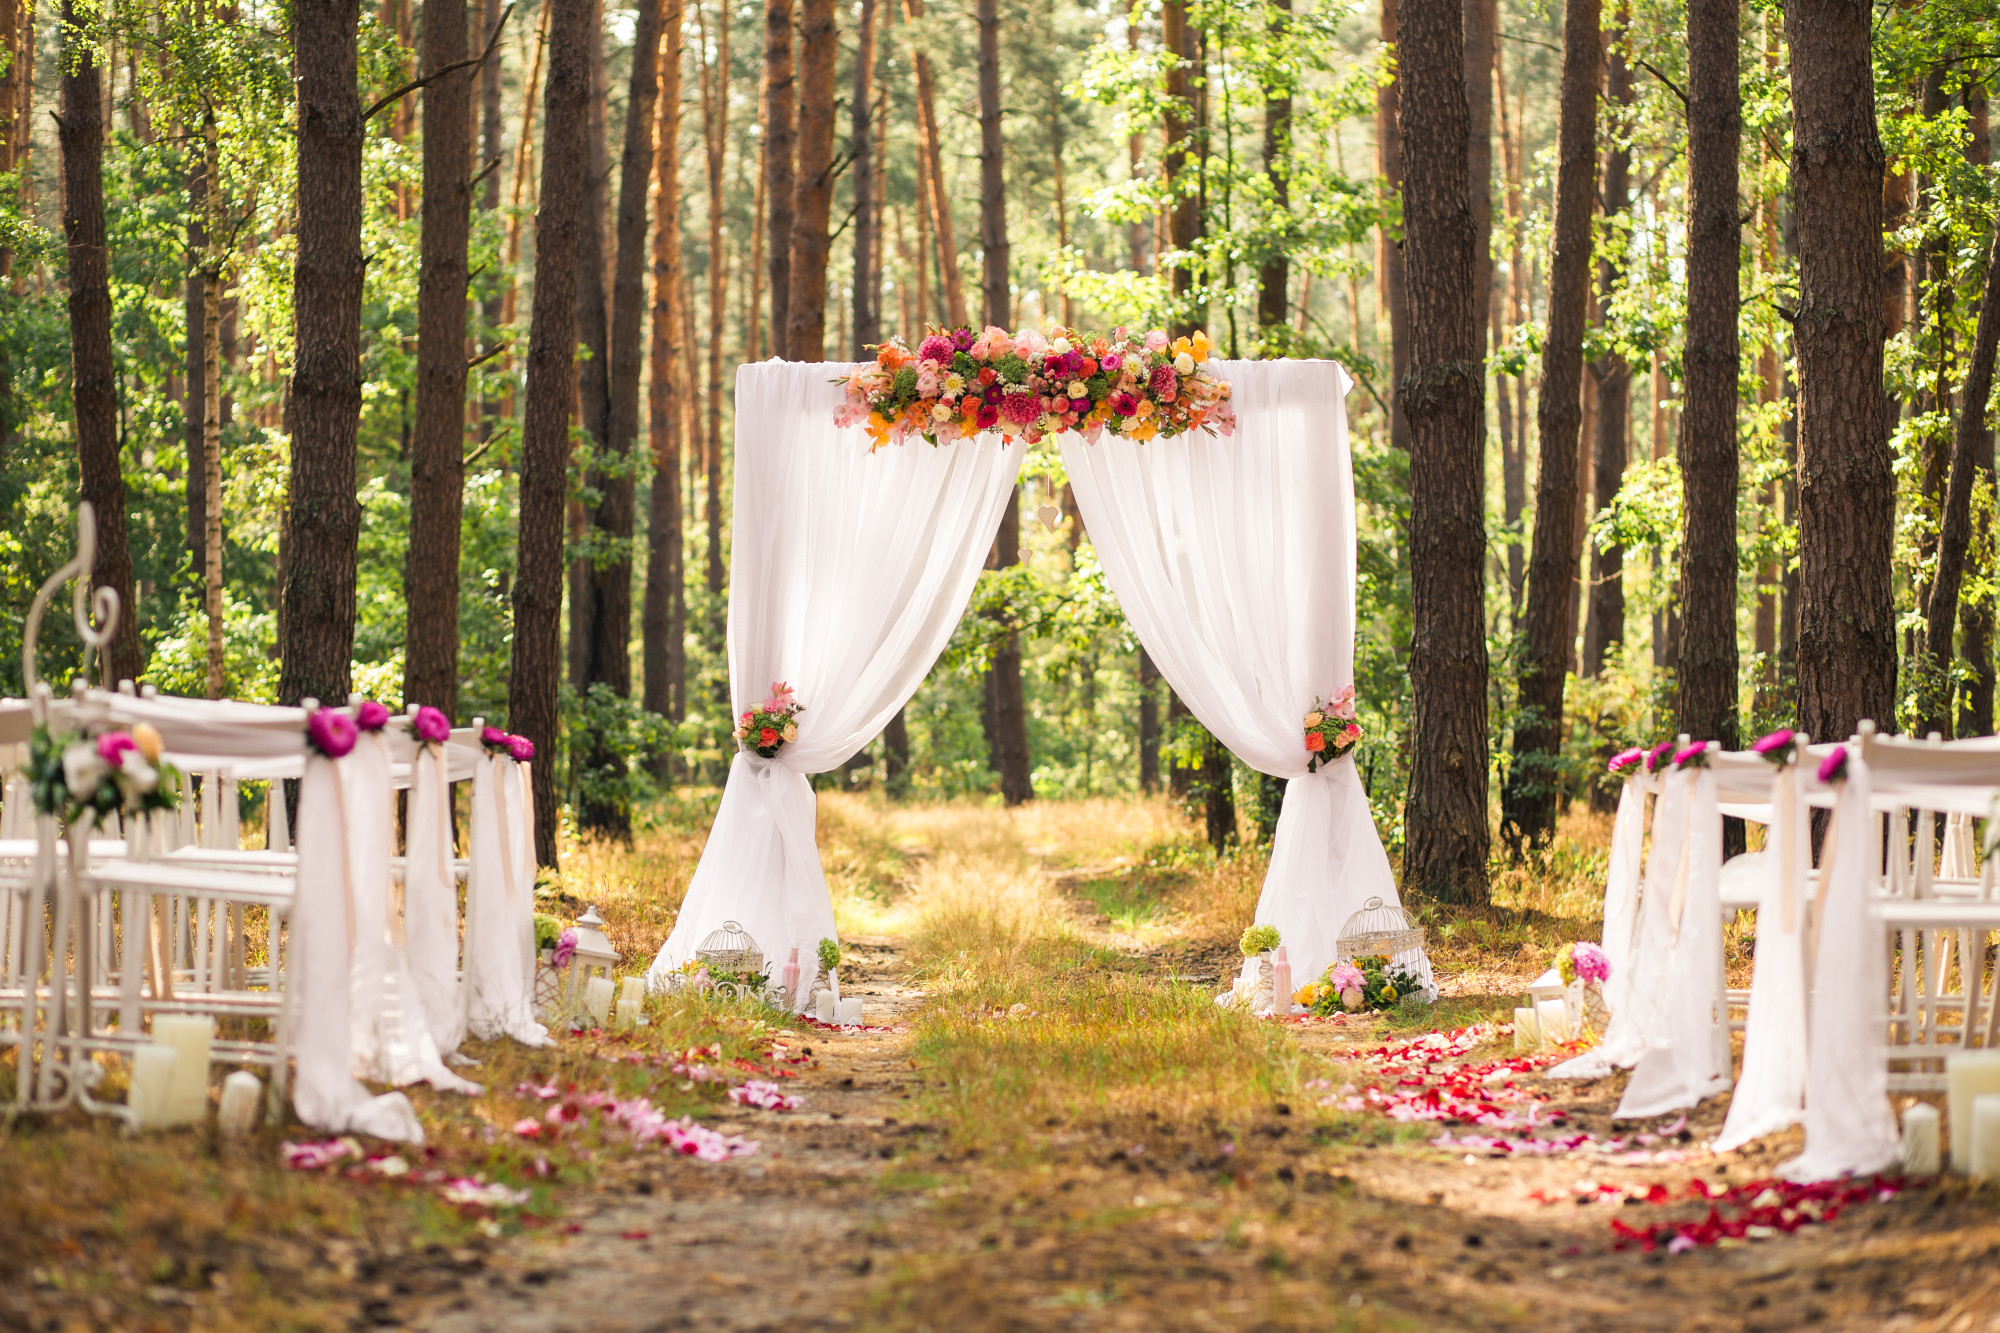 10 Top Wedding Themes Right Now